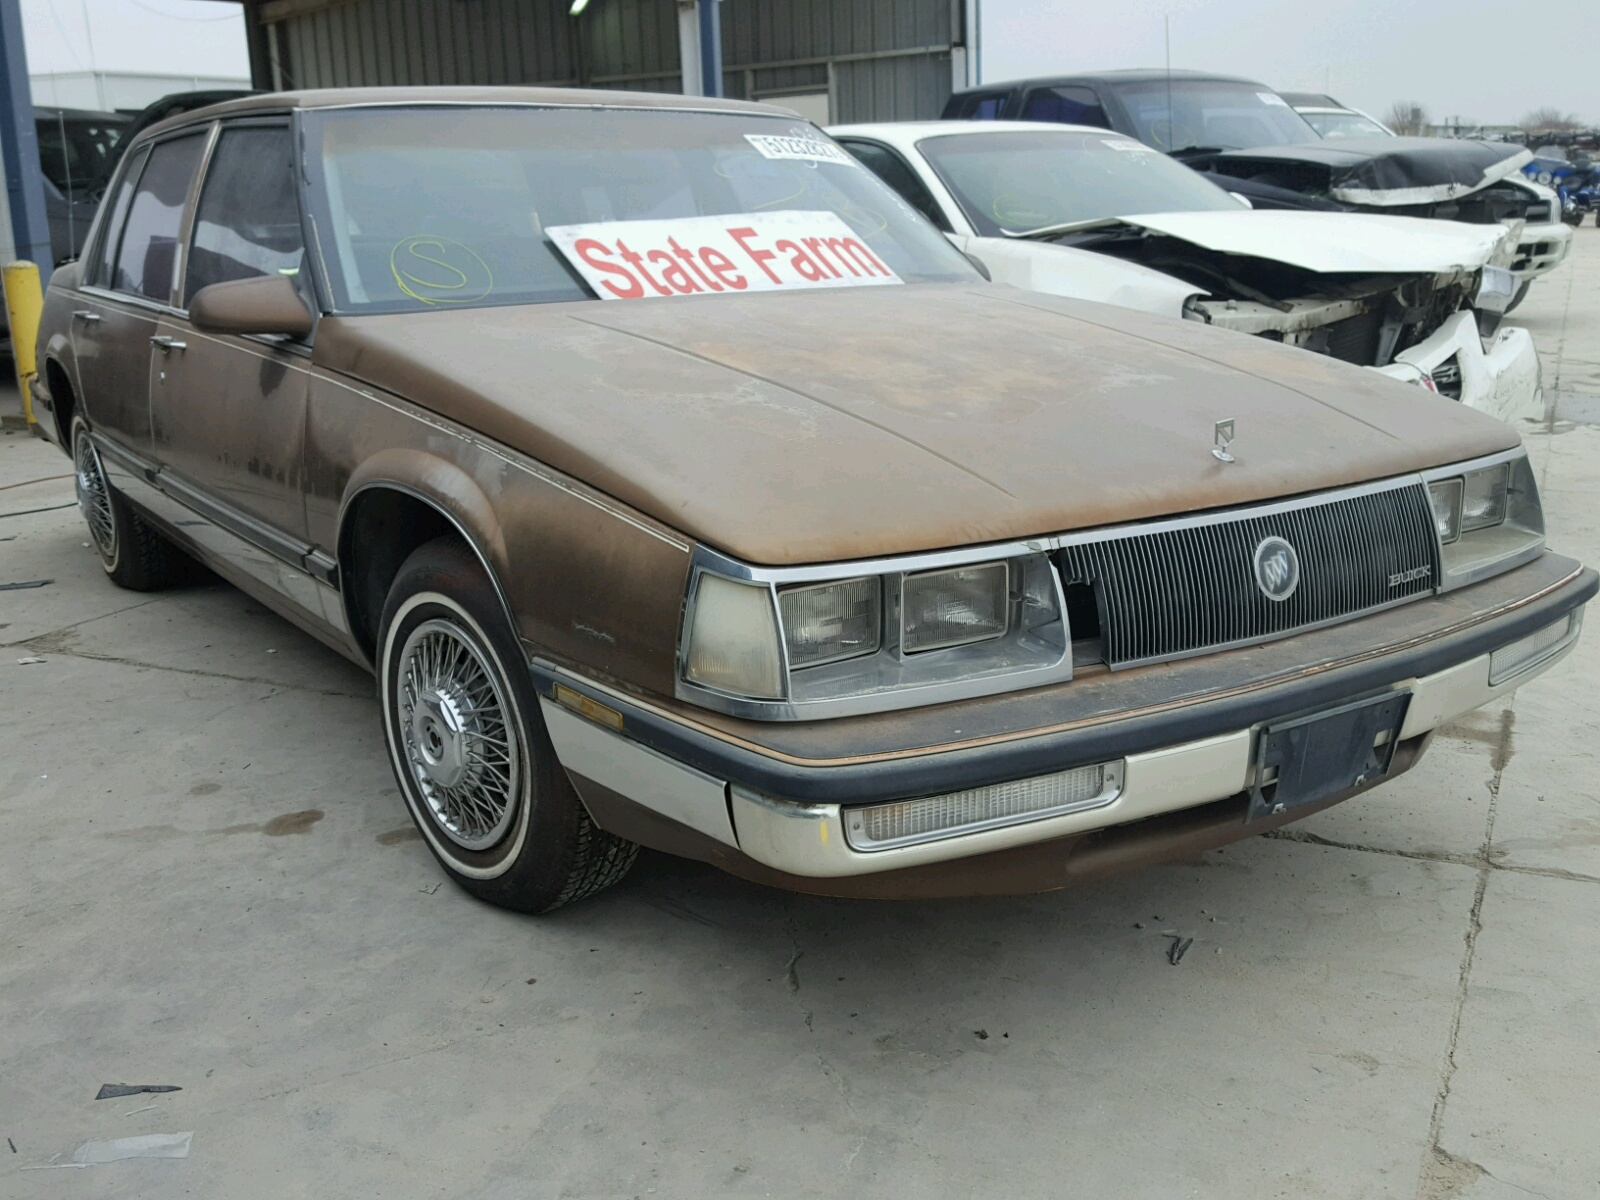 A C D Be Ef B Fc A Ce A on 1985 Buick Lesabre Texas